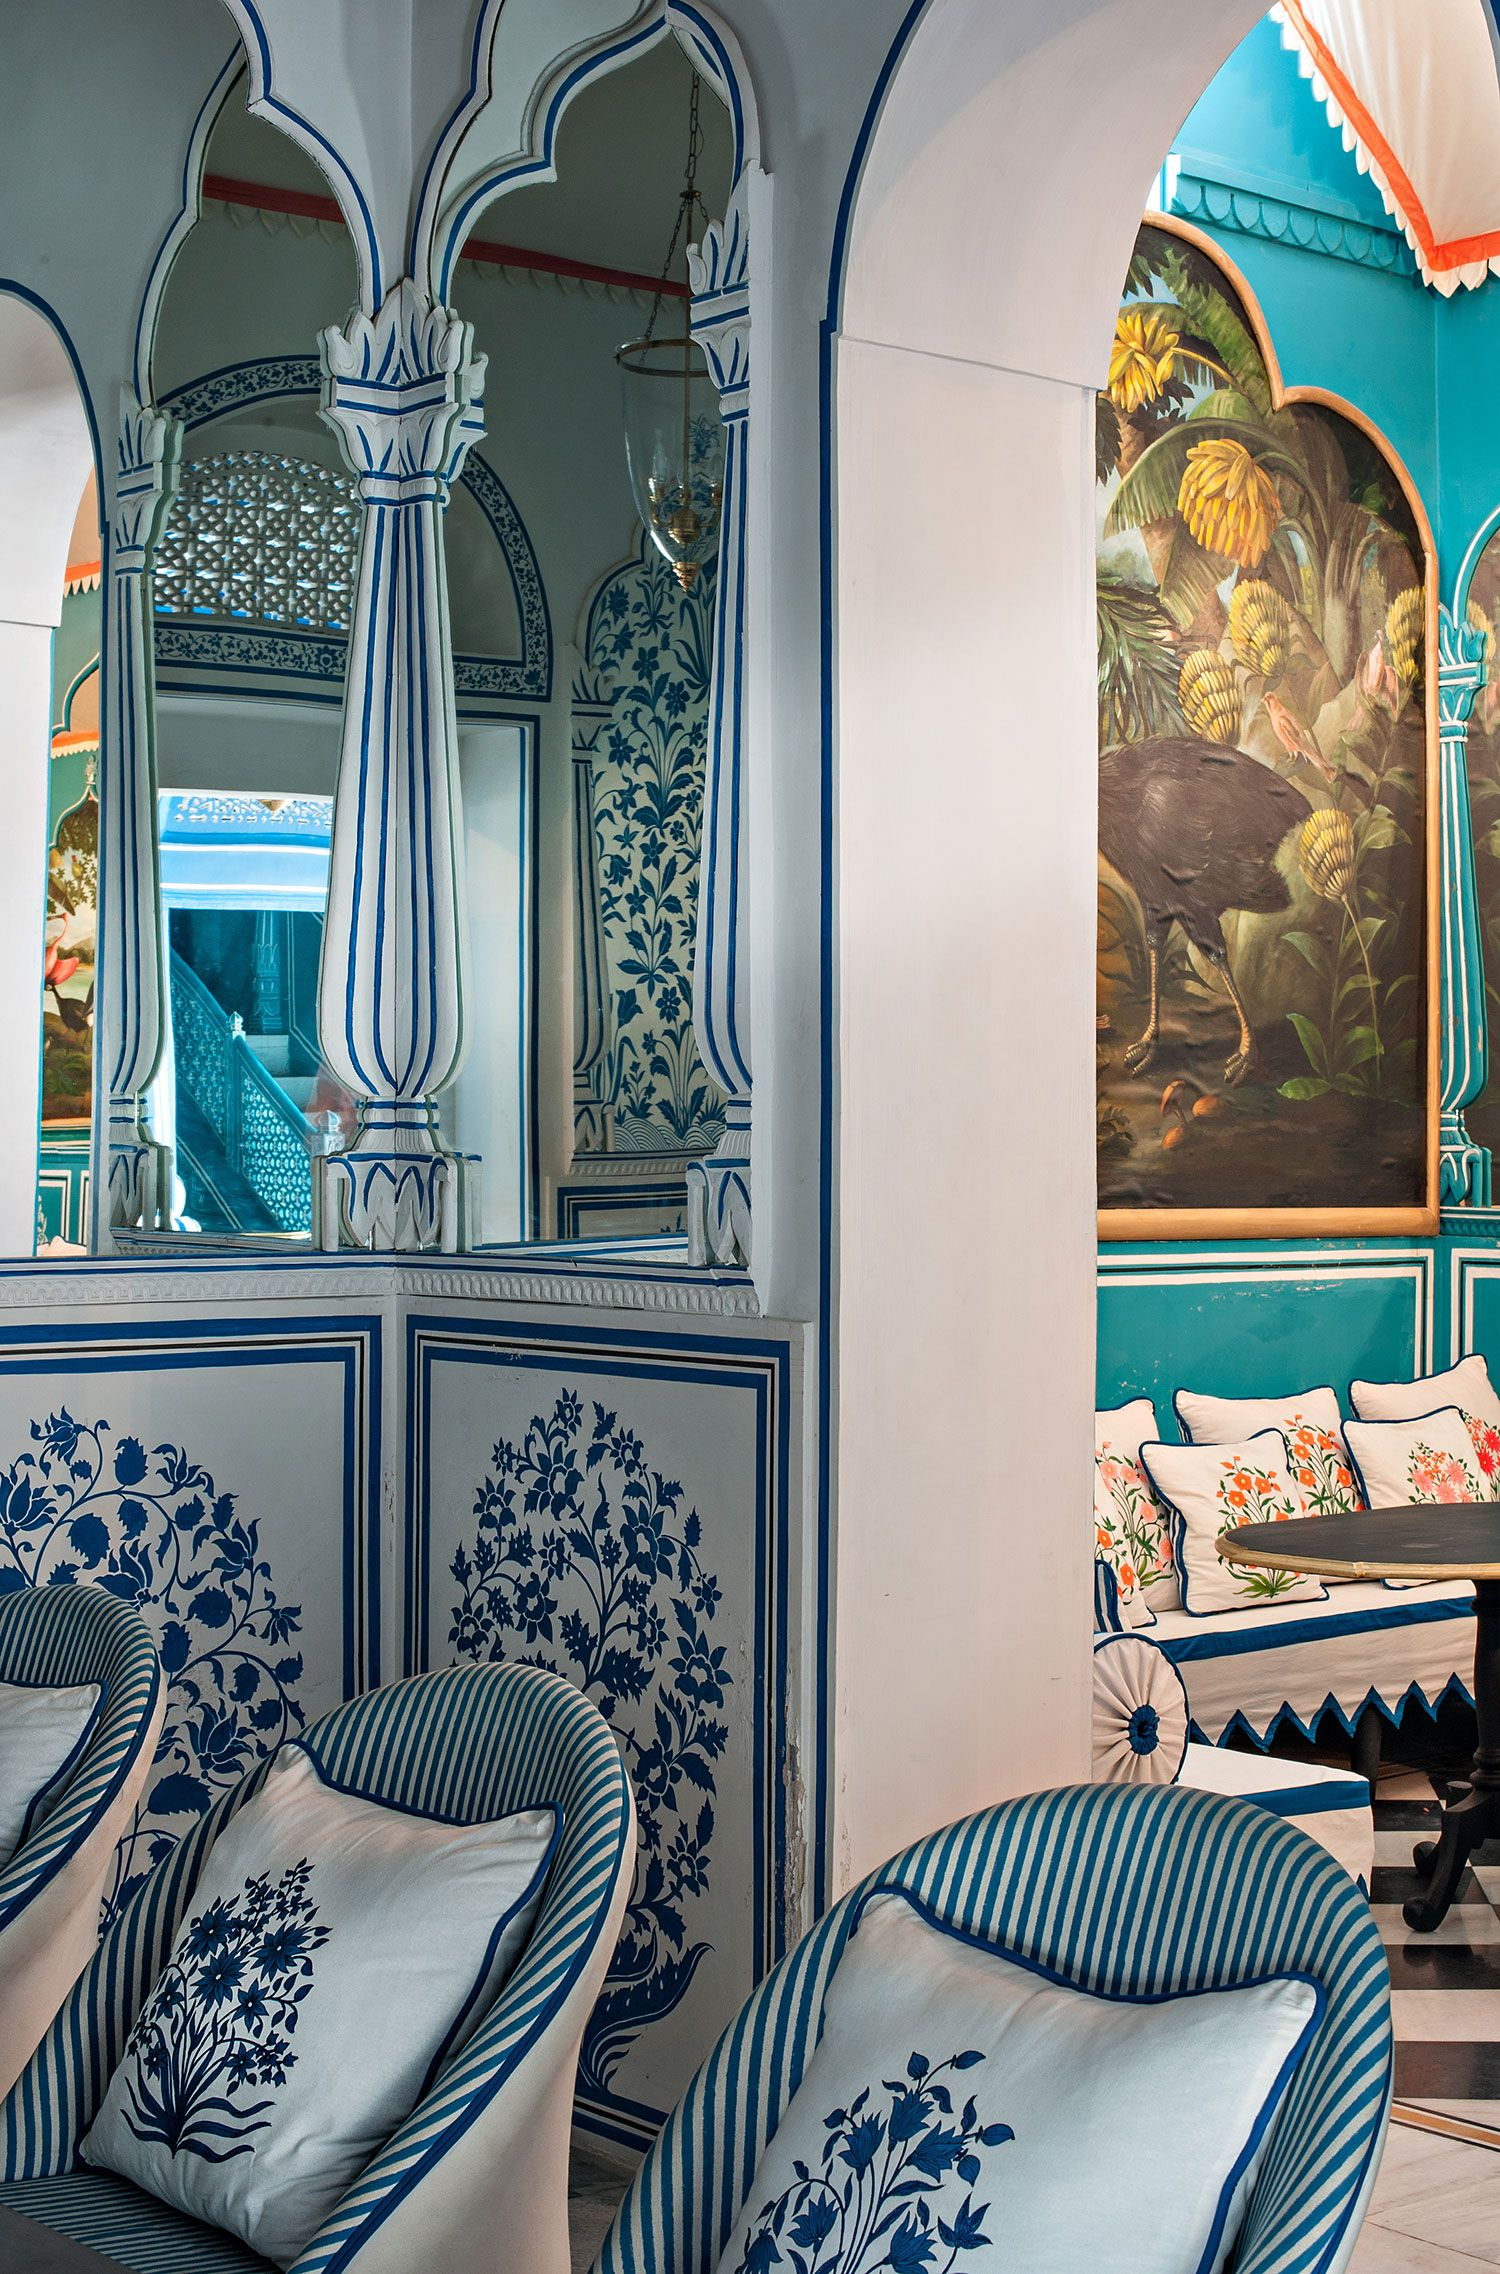 Jaipur S Most Picturesque Bar With Images Hotel Interiors